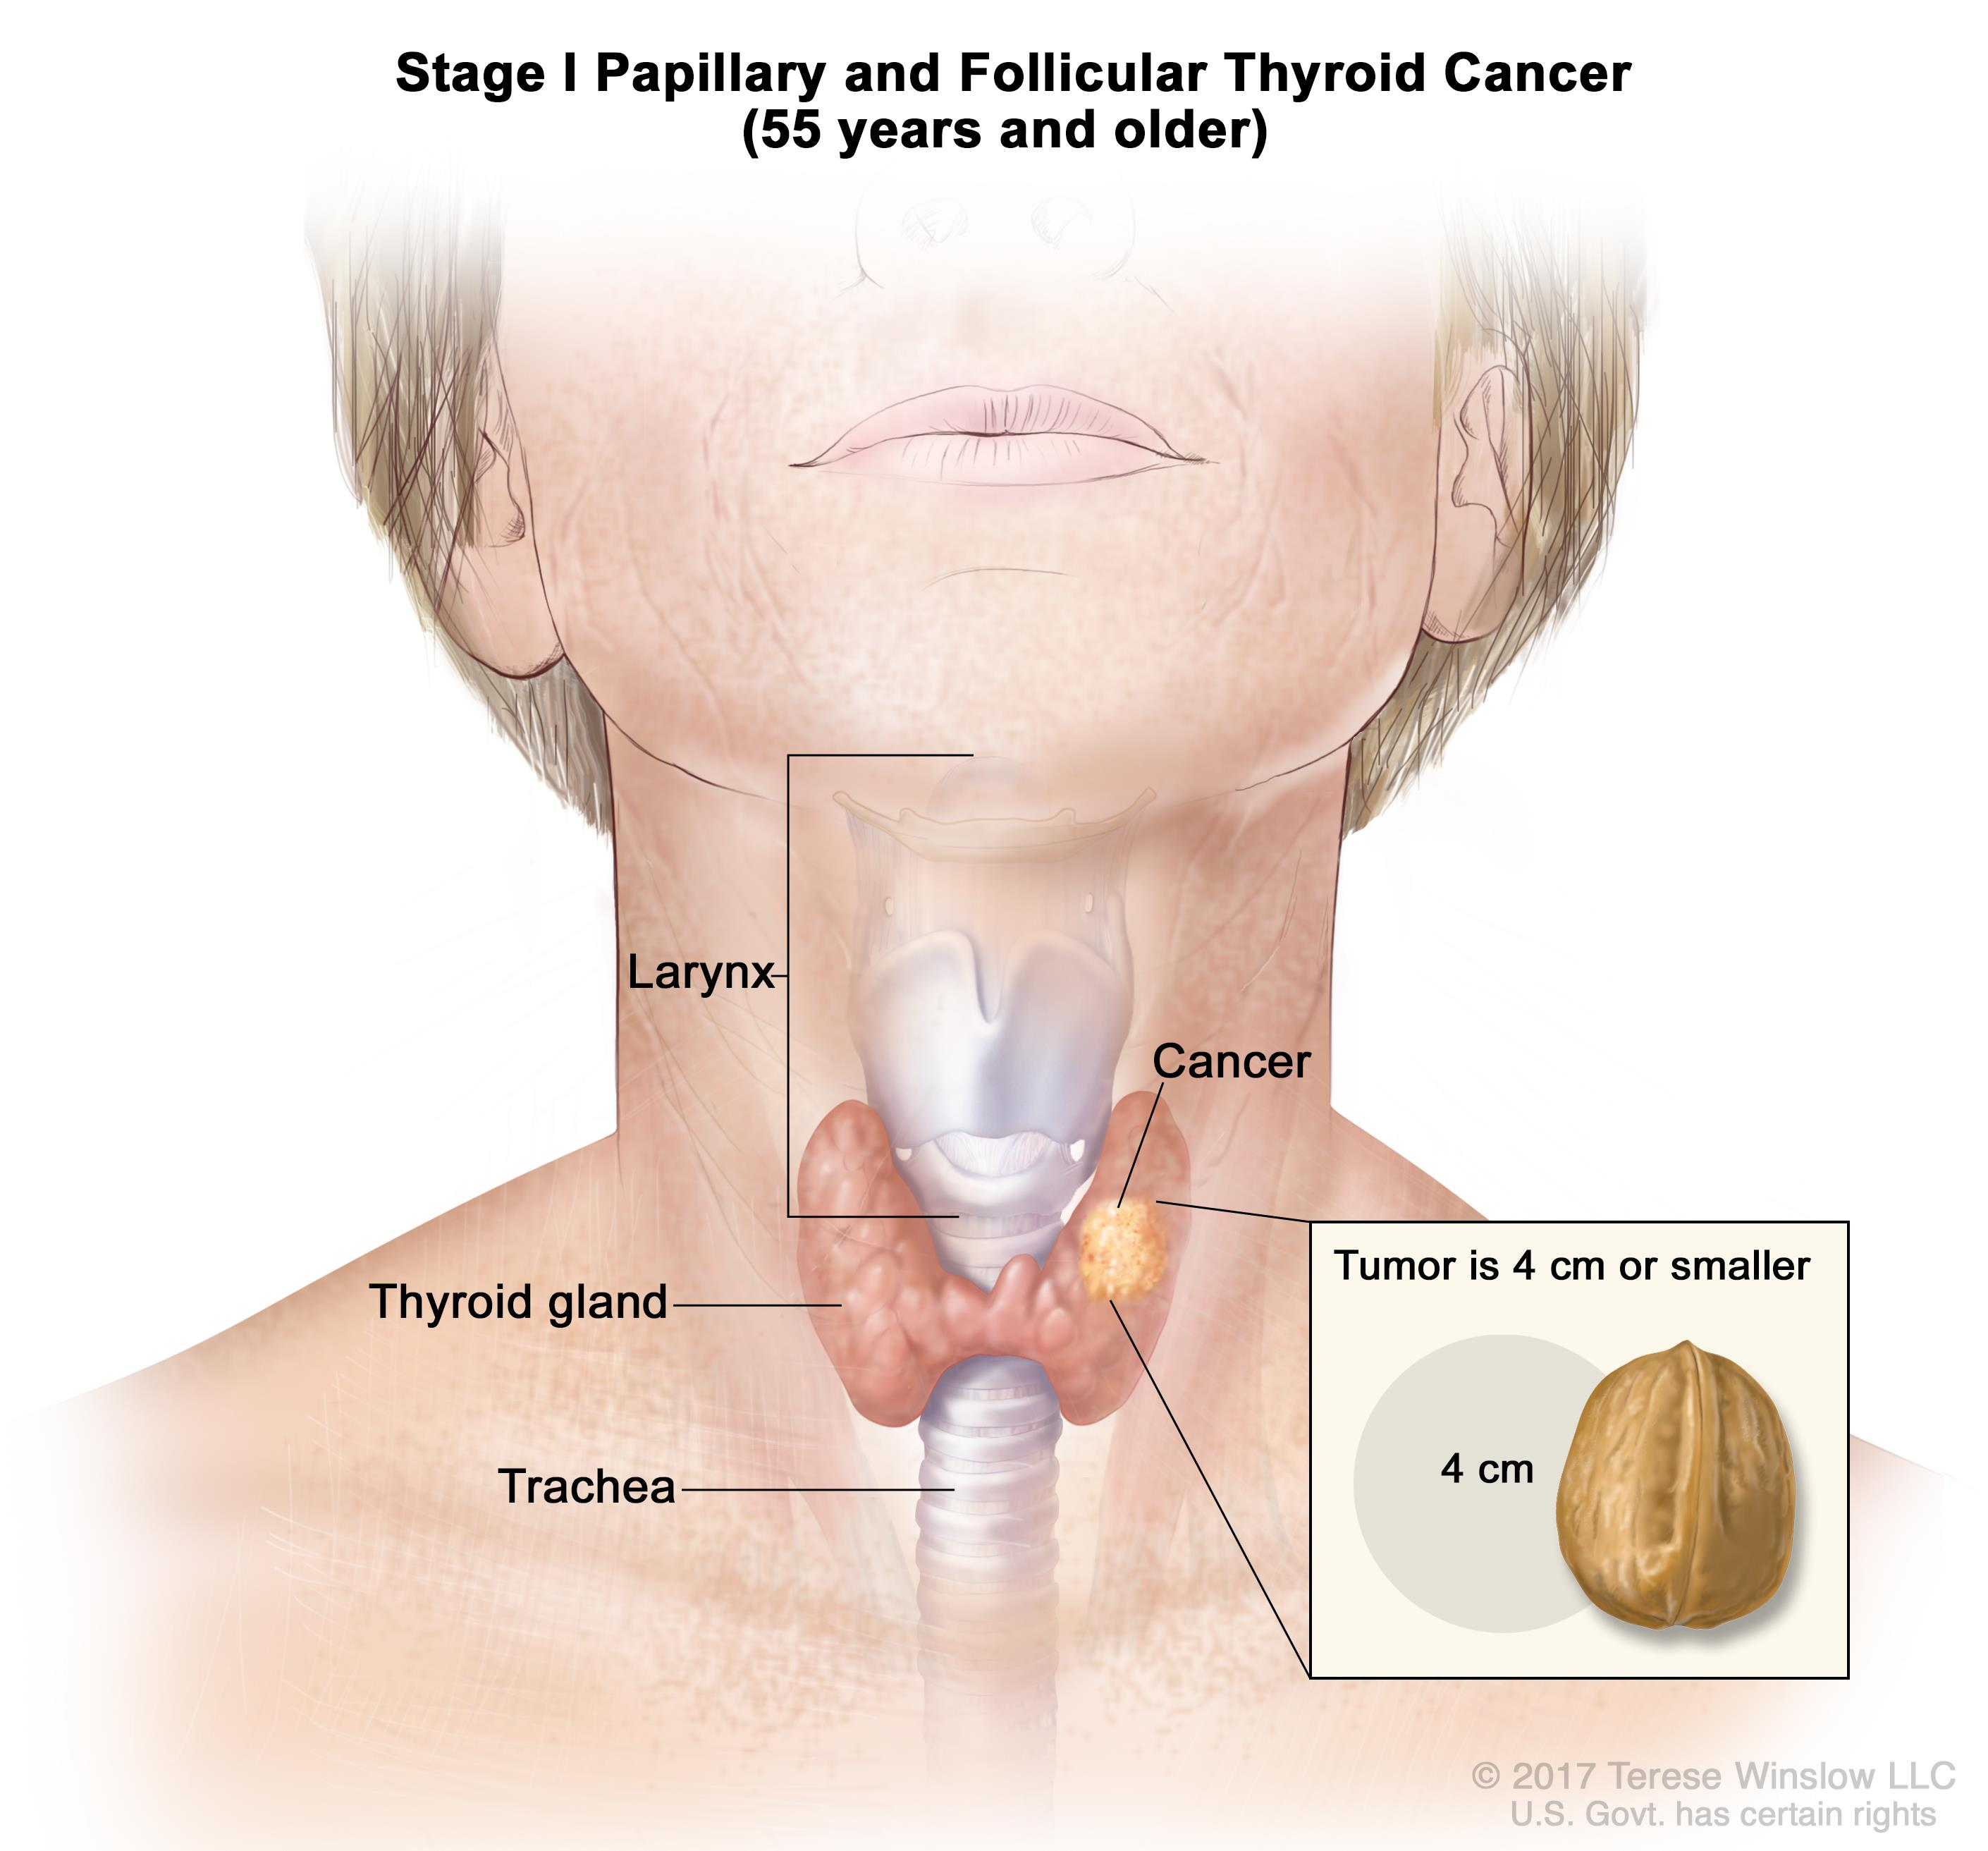 hpv cancer in females